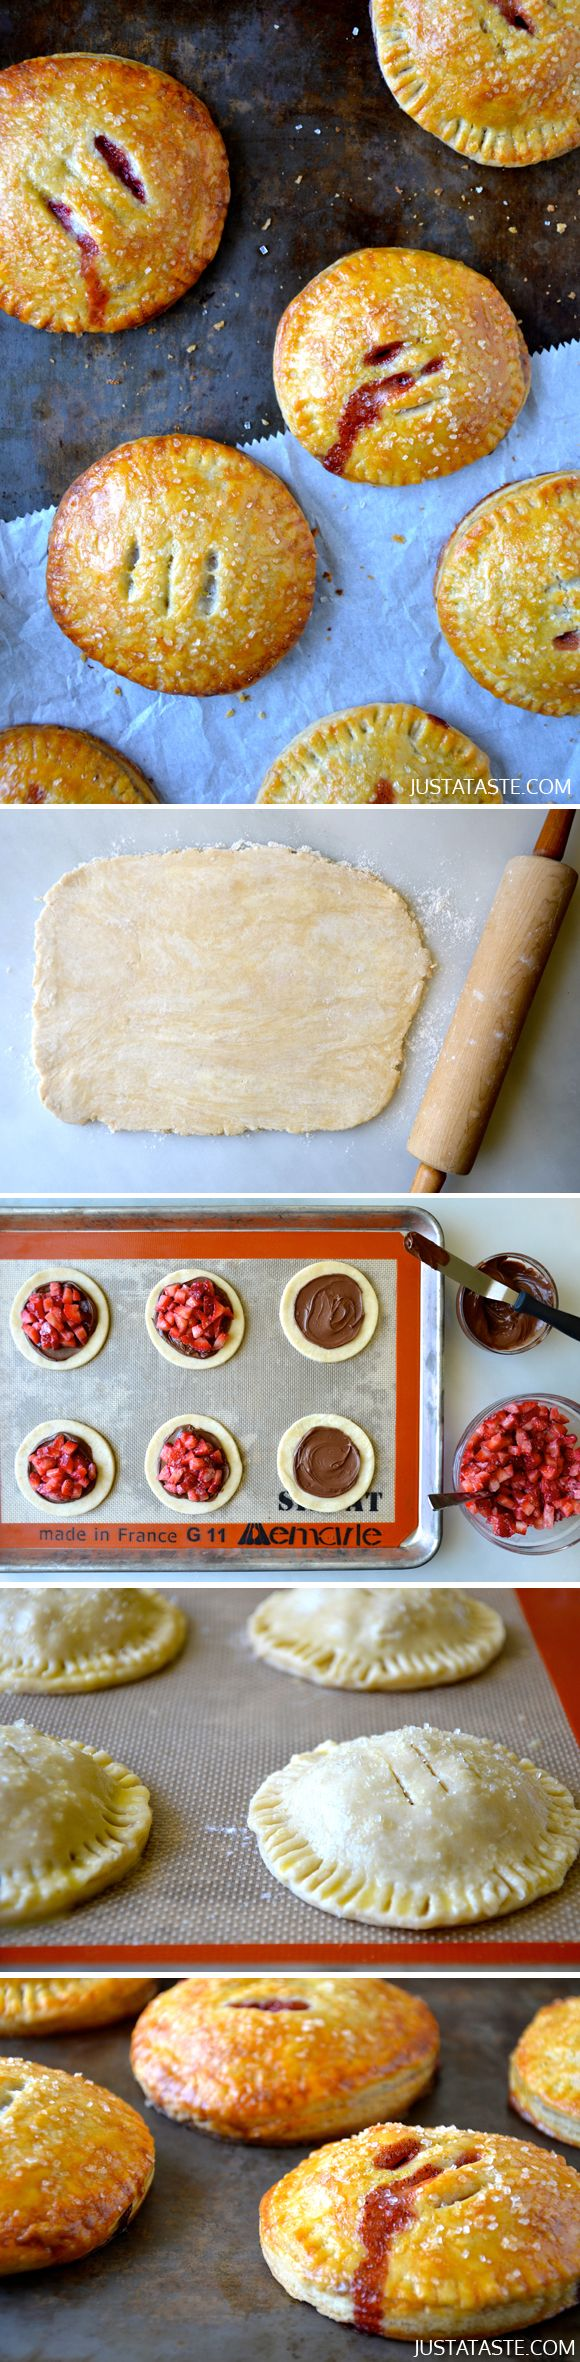 Strawberry Nutella Hand Pies #recipe